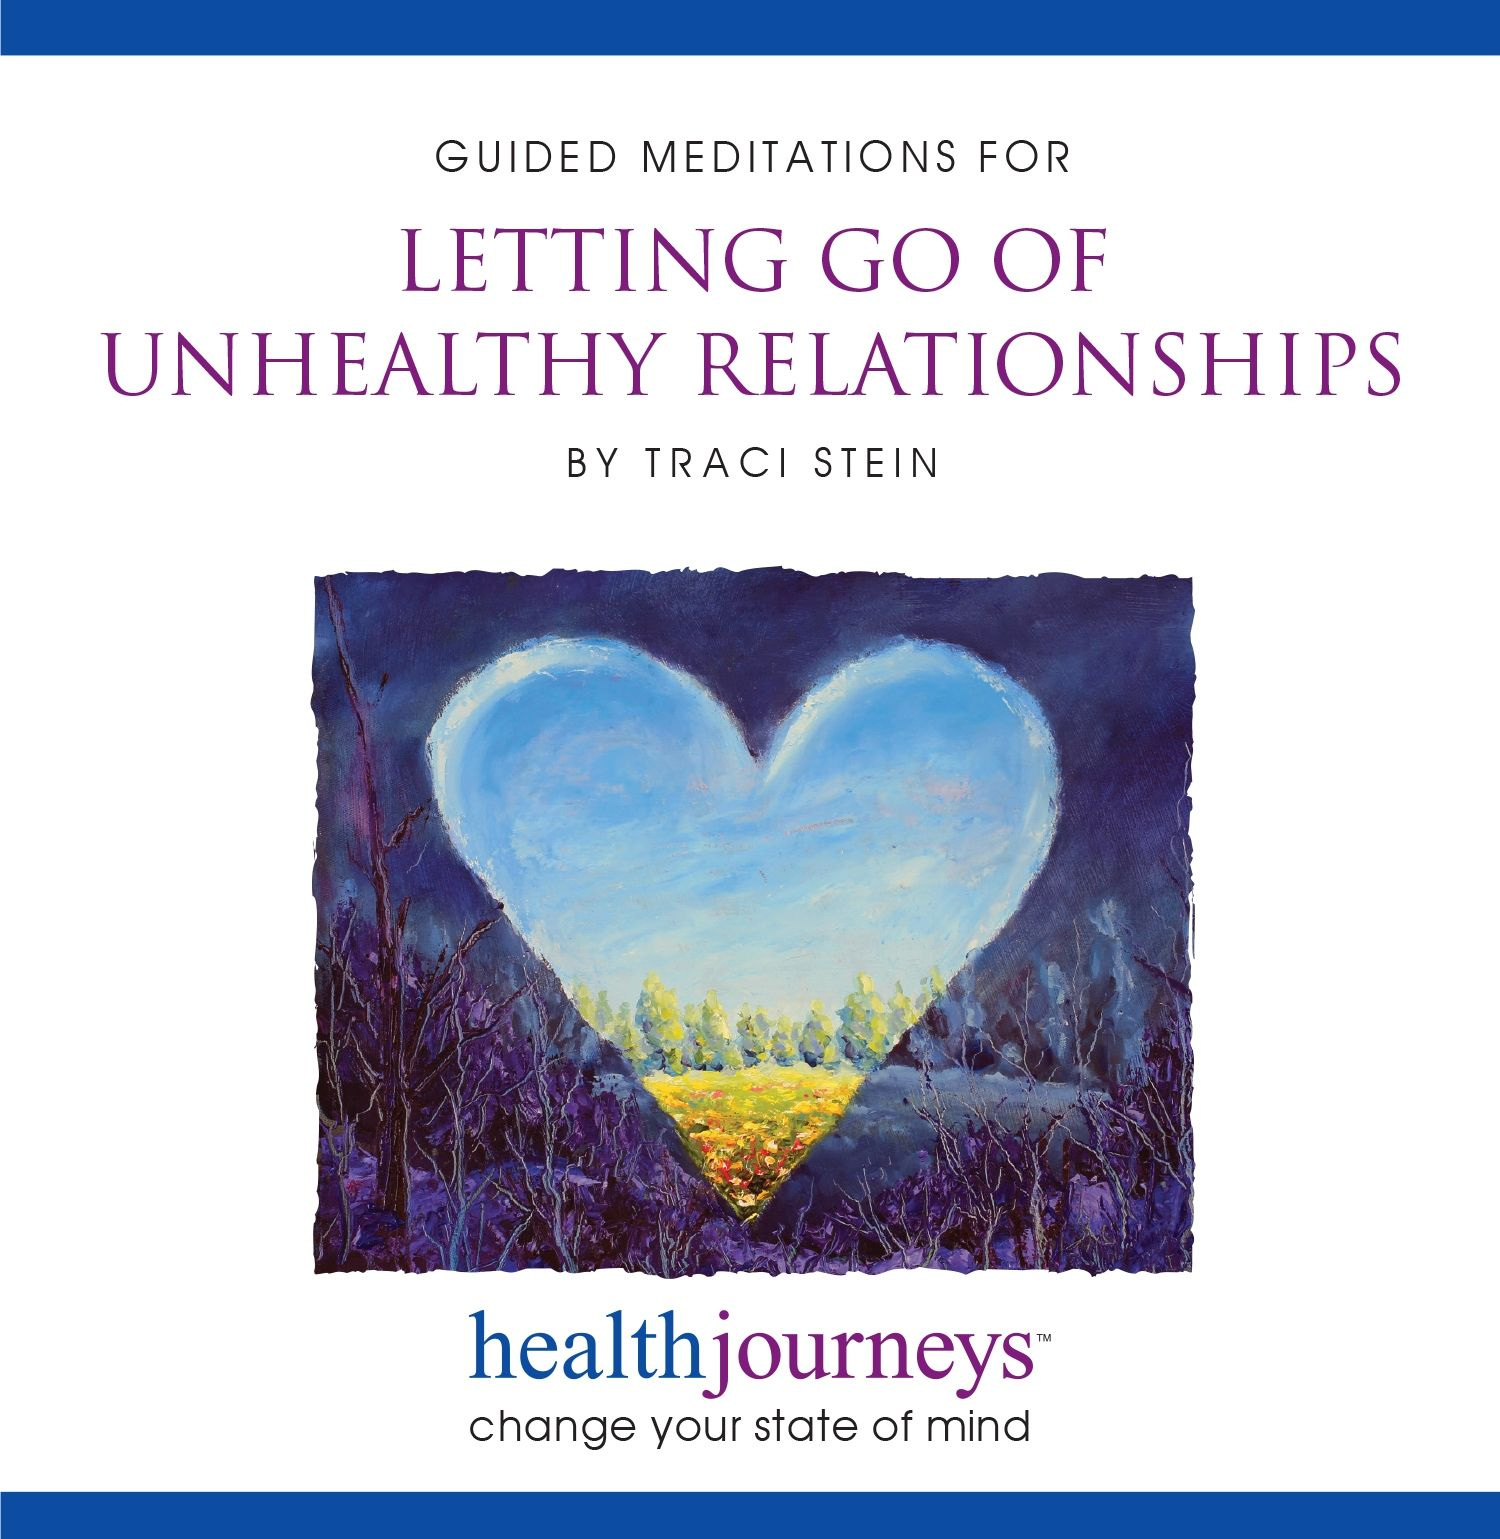 Letting Go of Unhealthy Relationships